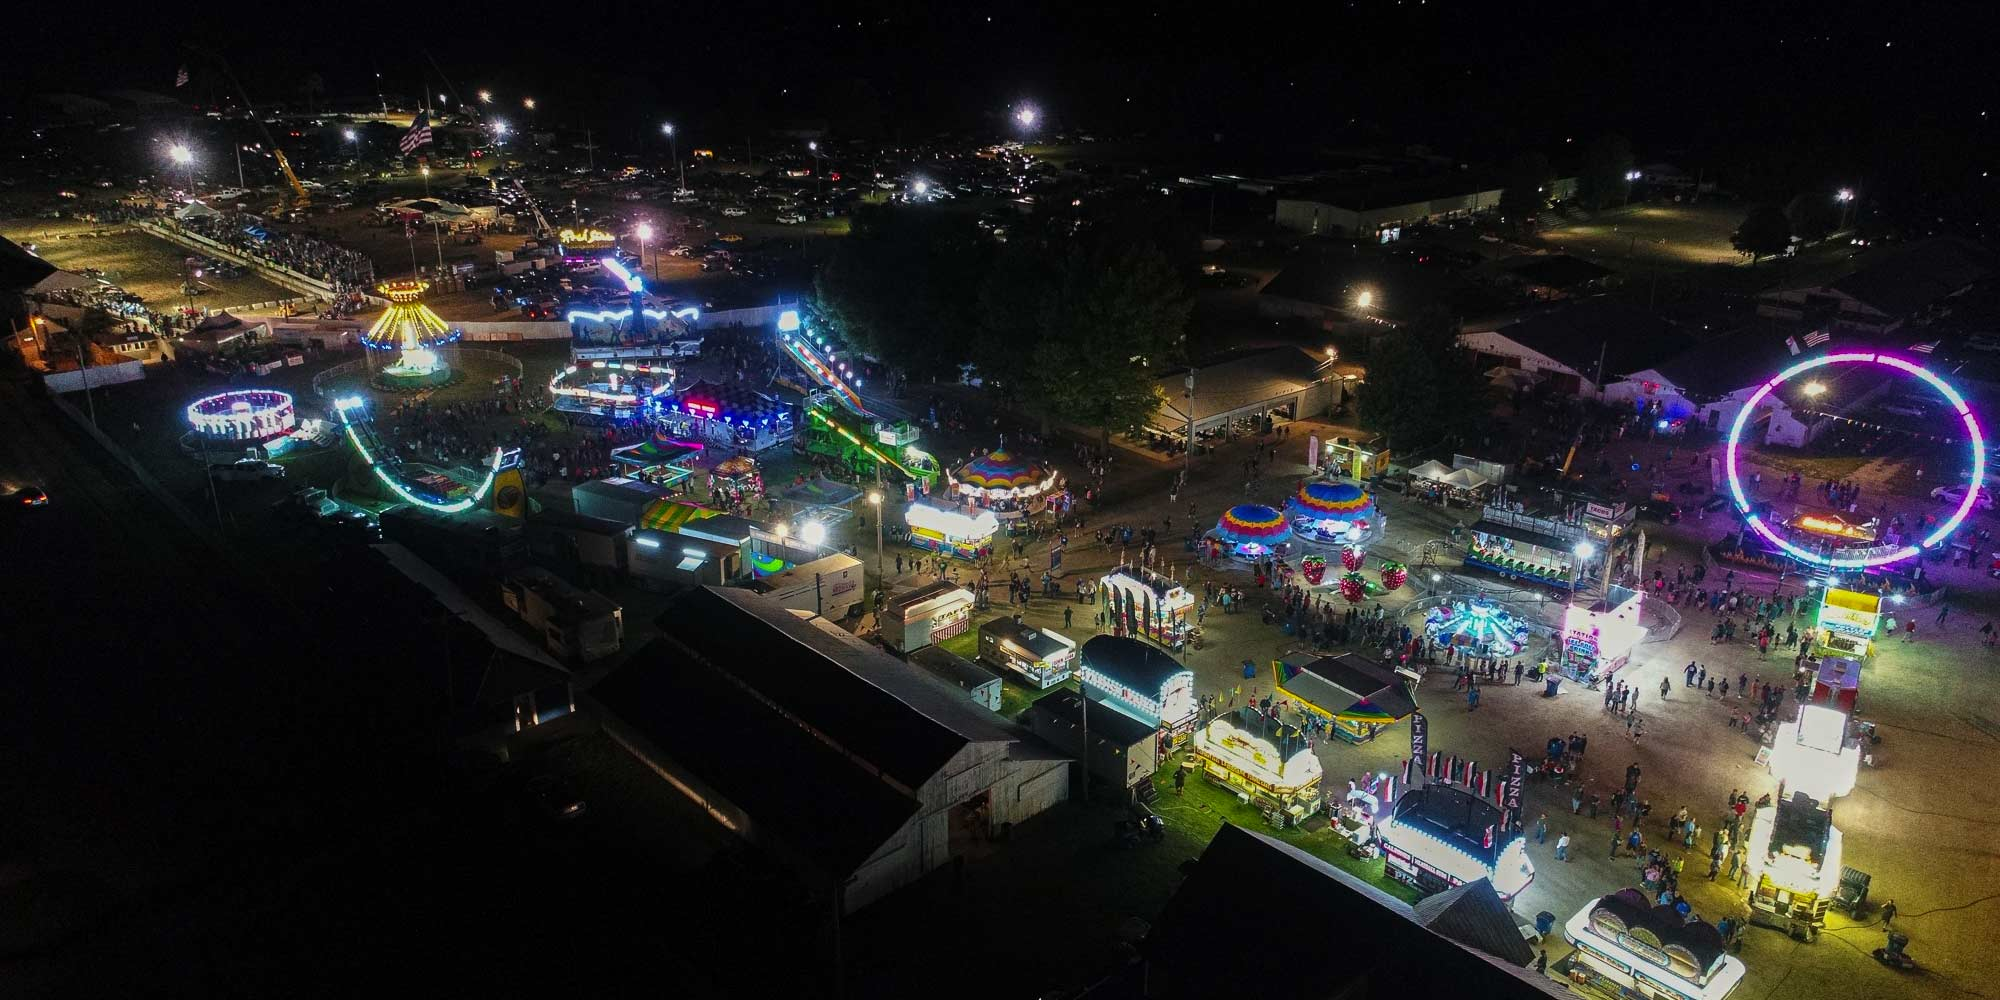 Bureau County Fair 2020.Bureau County Fairgrounds August 26th 30th 2020